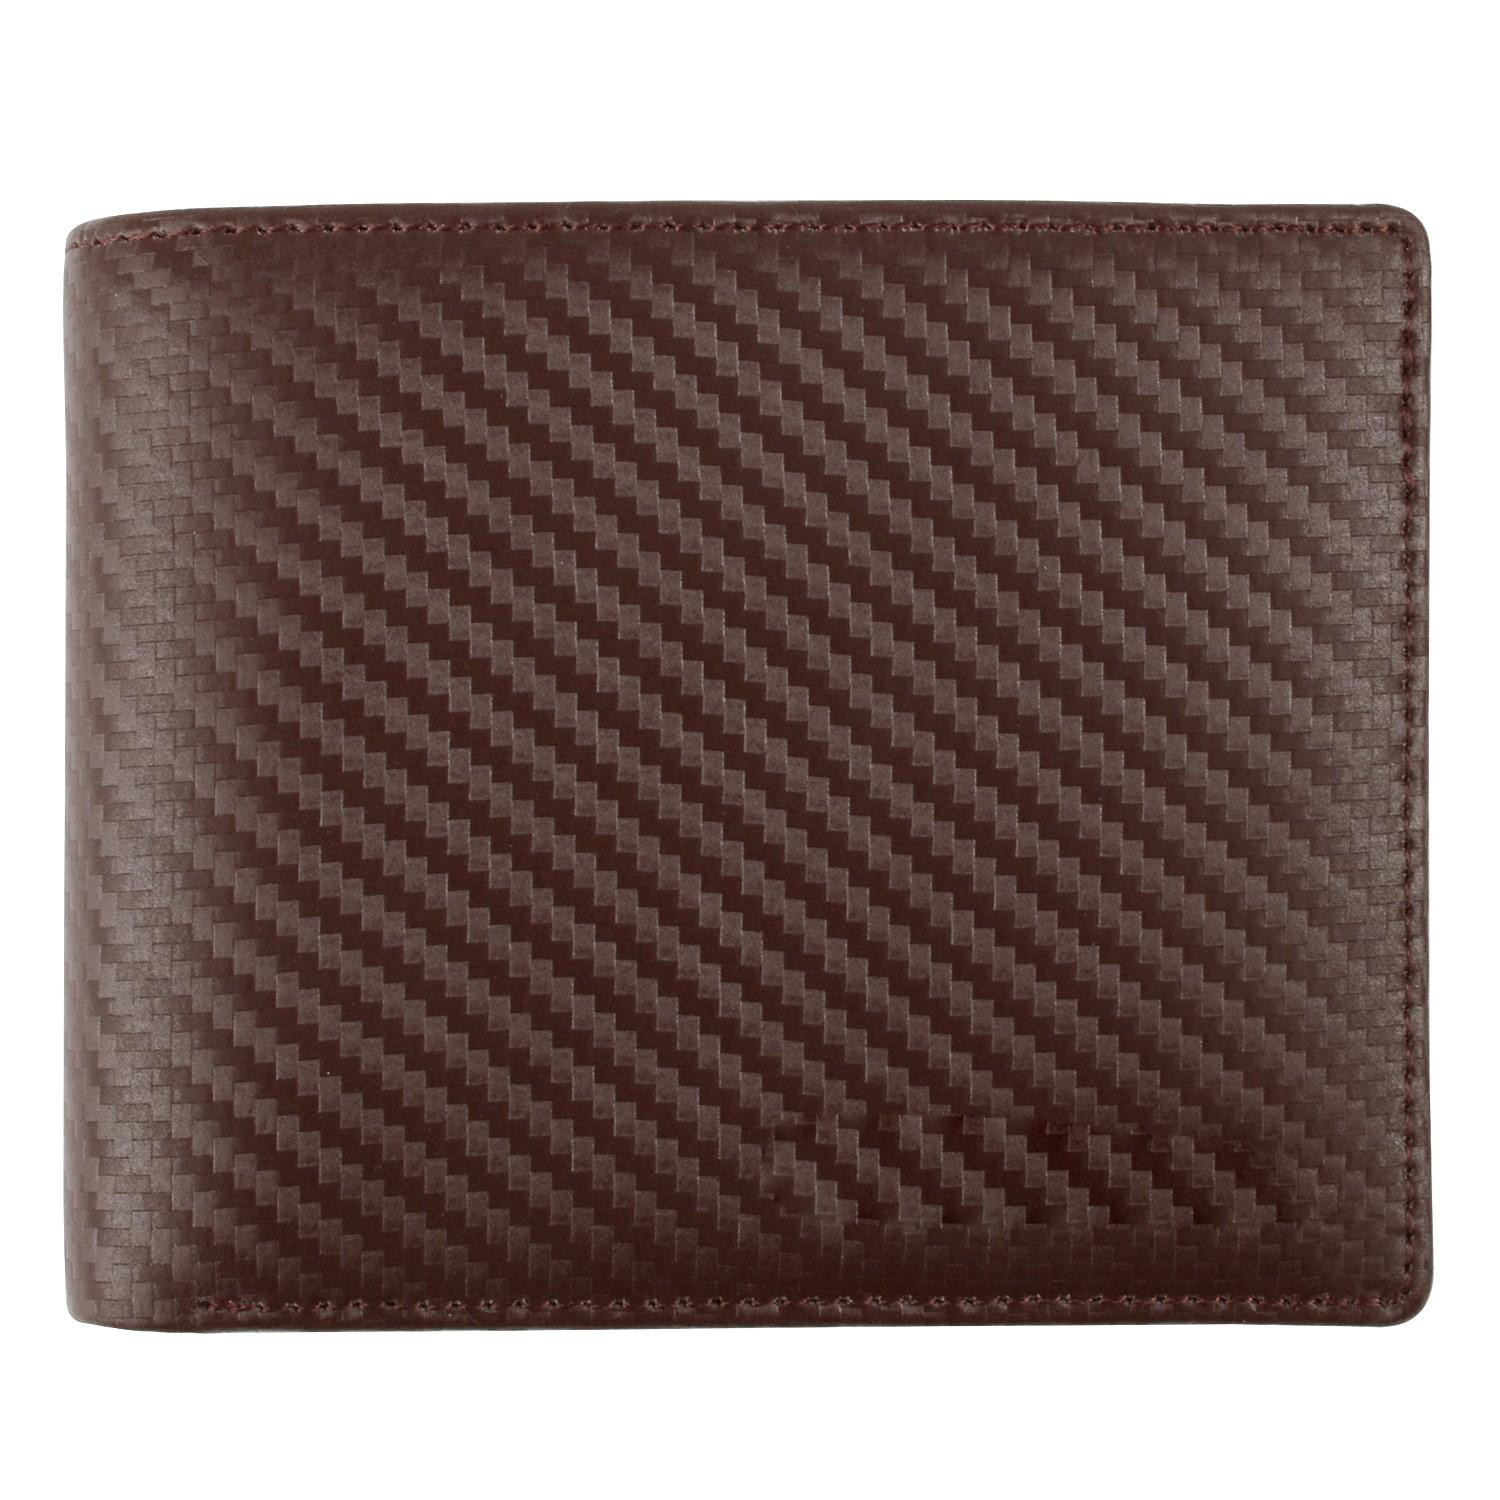 AIVI multi-function custom leather wallets for sale for men-3